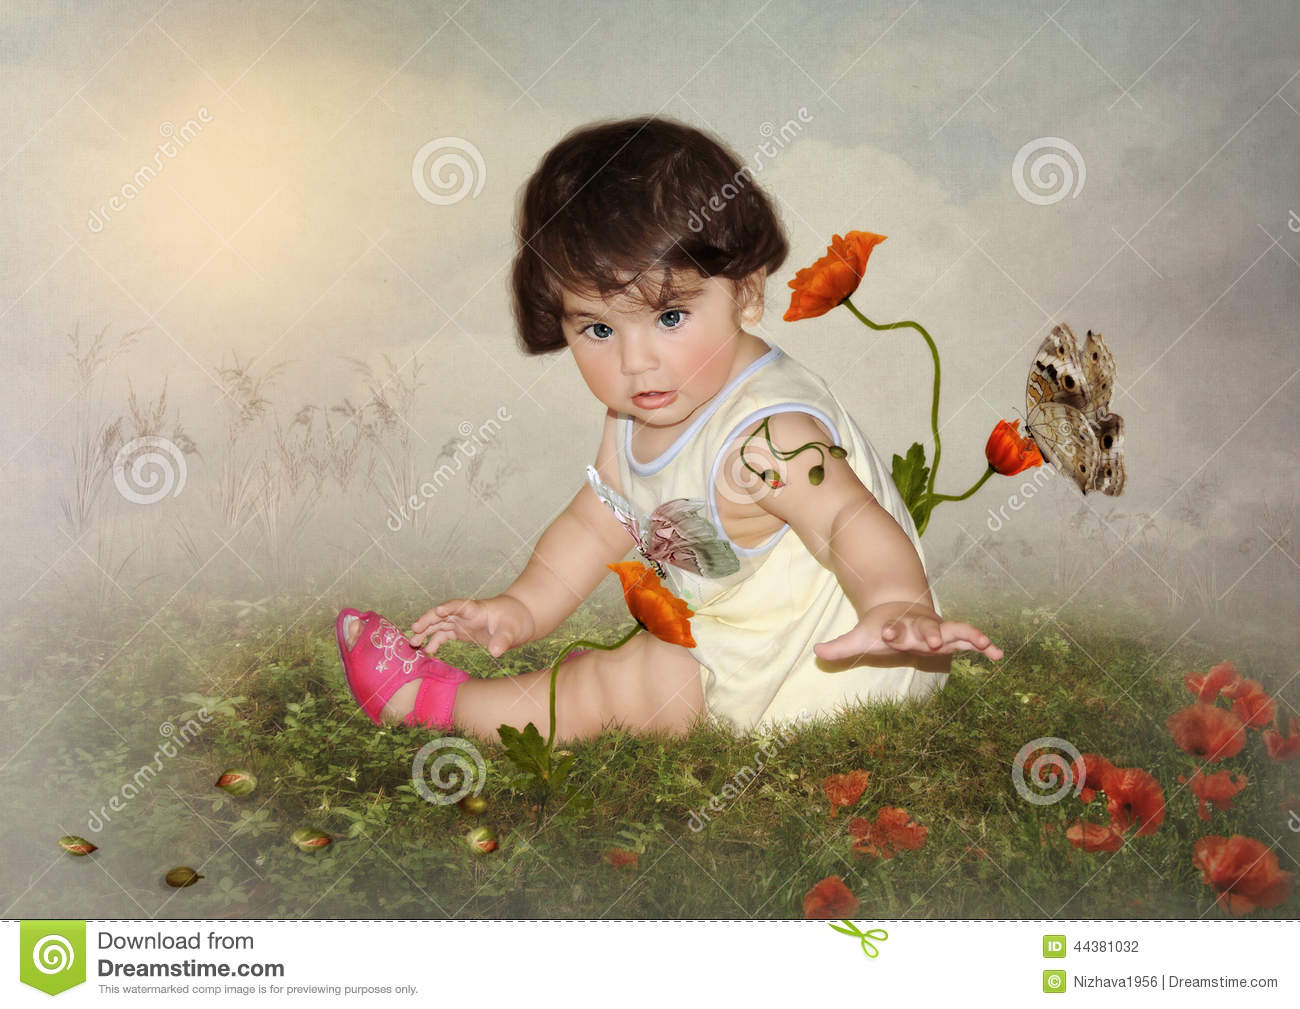 The baby and butterflies